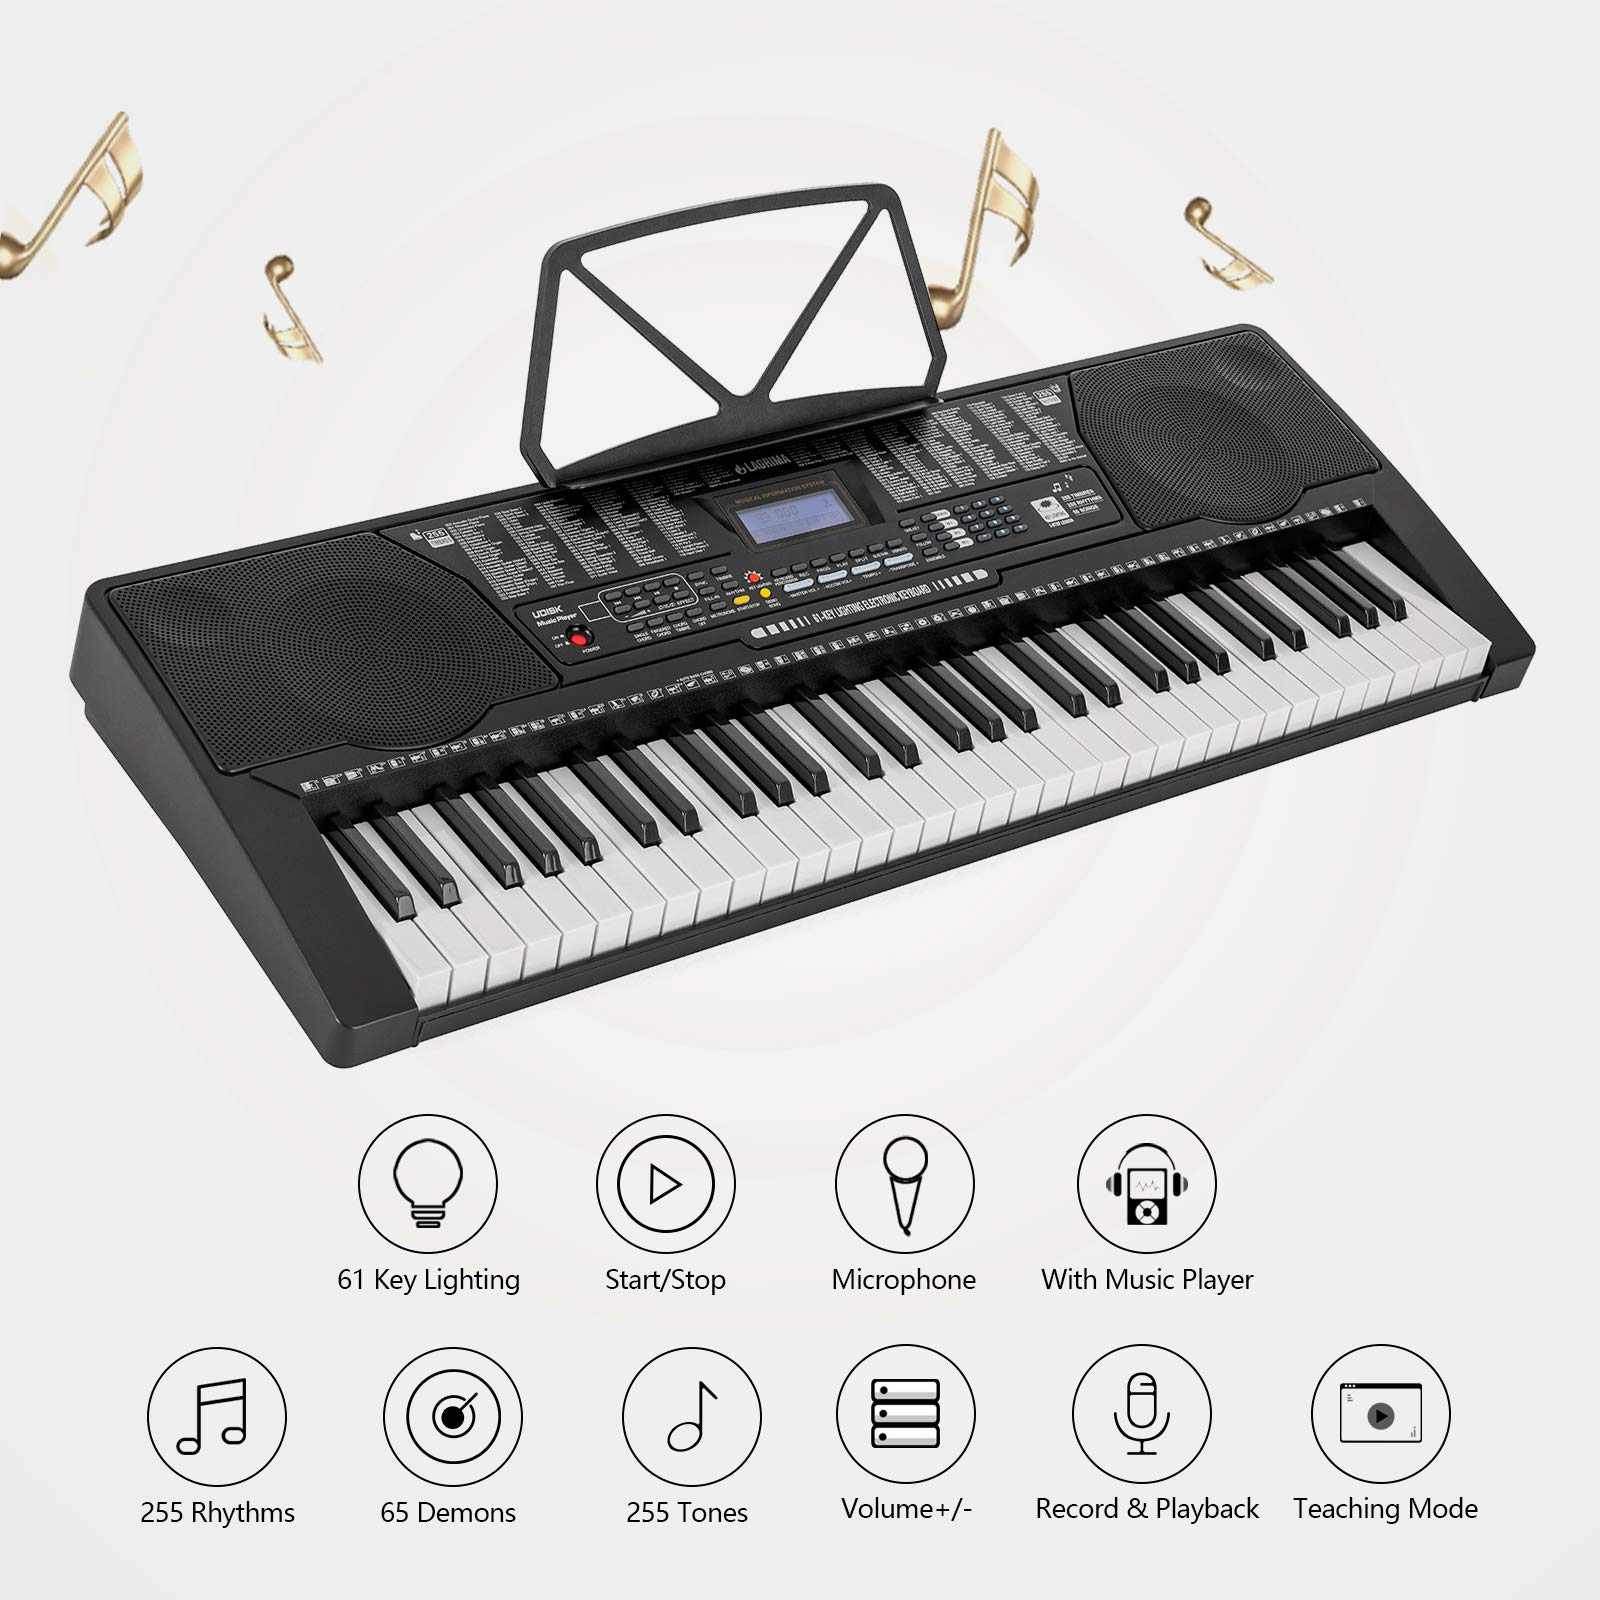 LAGRIMA 61 Key Electric Keyboard Piano w/Light Up Keys for Beginner, Lighted Portable Keyboard w/Music Player Function, Micphone, Power Supply, Music Stand, Black by LAGRIMA (Image #2)